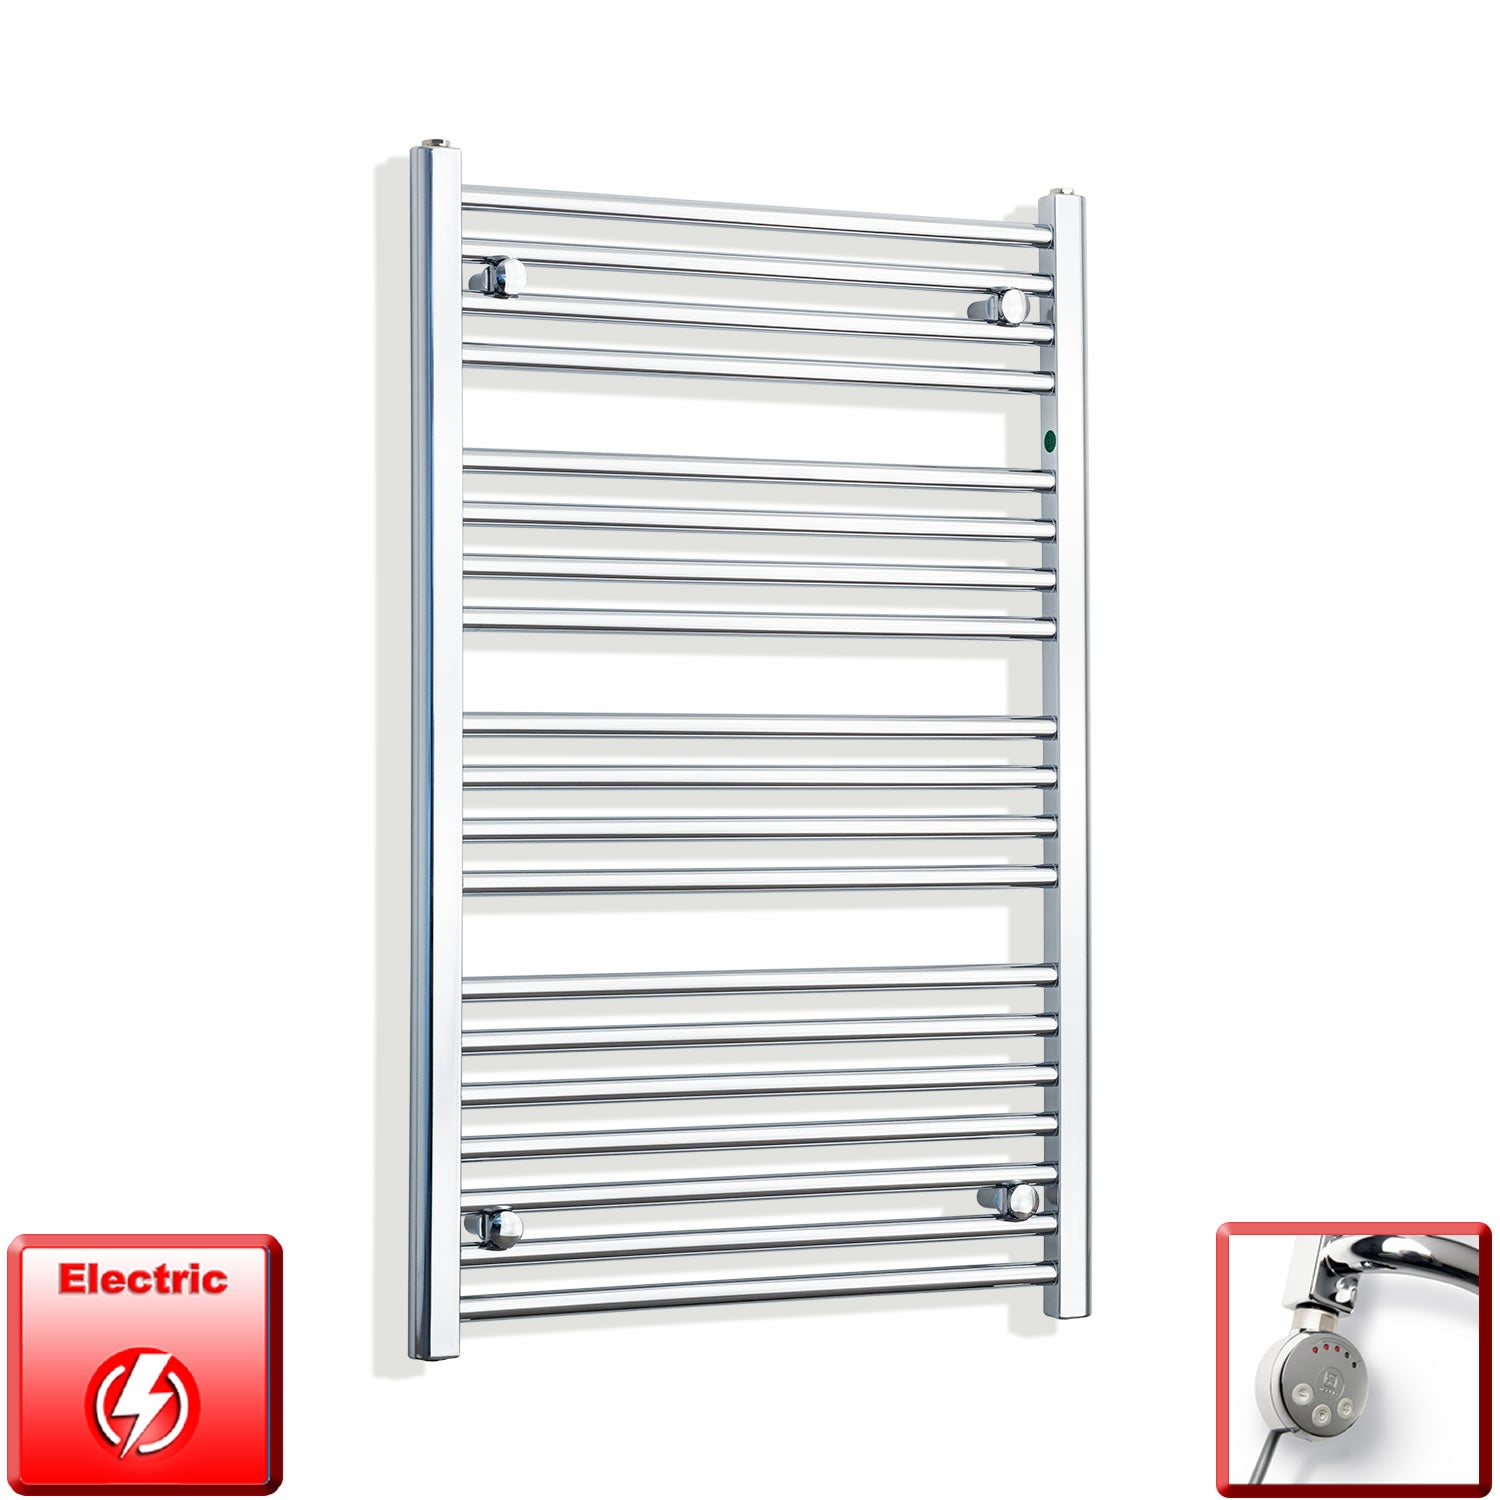 700mm Wide 1000mm High Flat Or Curved Chrome Pre-Filled Electric Heated Towel Rail Radiator HTR,MEG Thermostatic Element / Straight